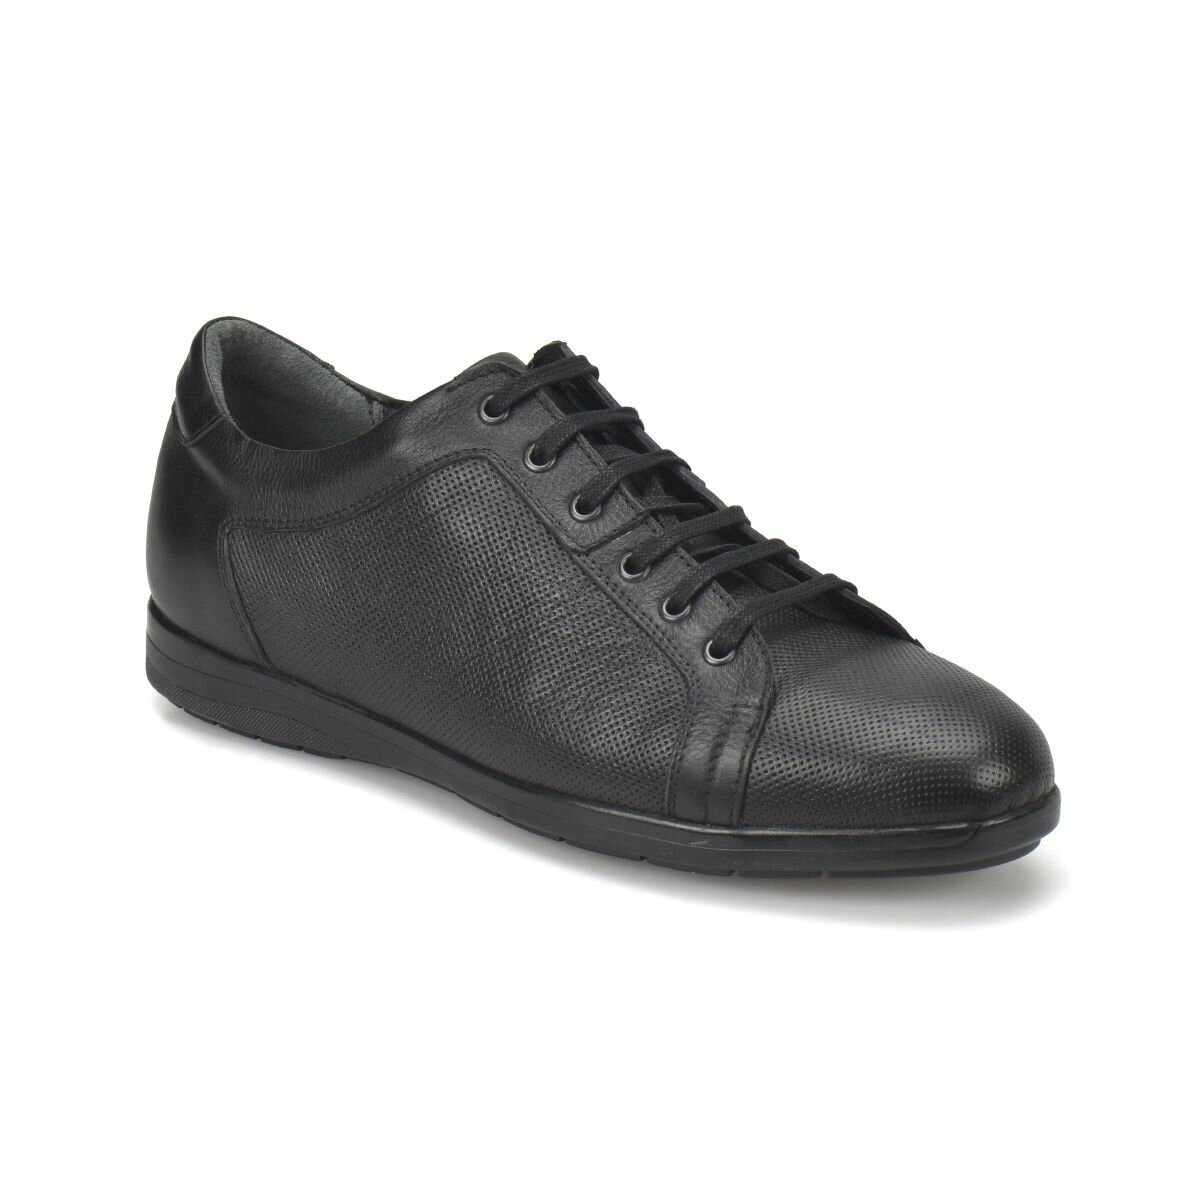 flo-062-4-black-male-shoes-flogart